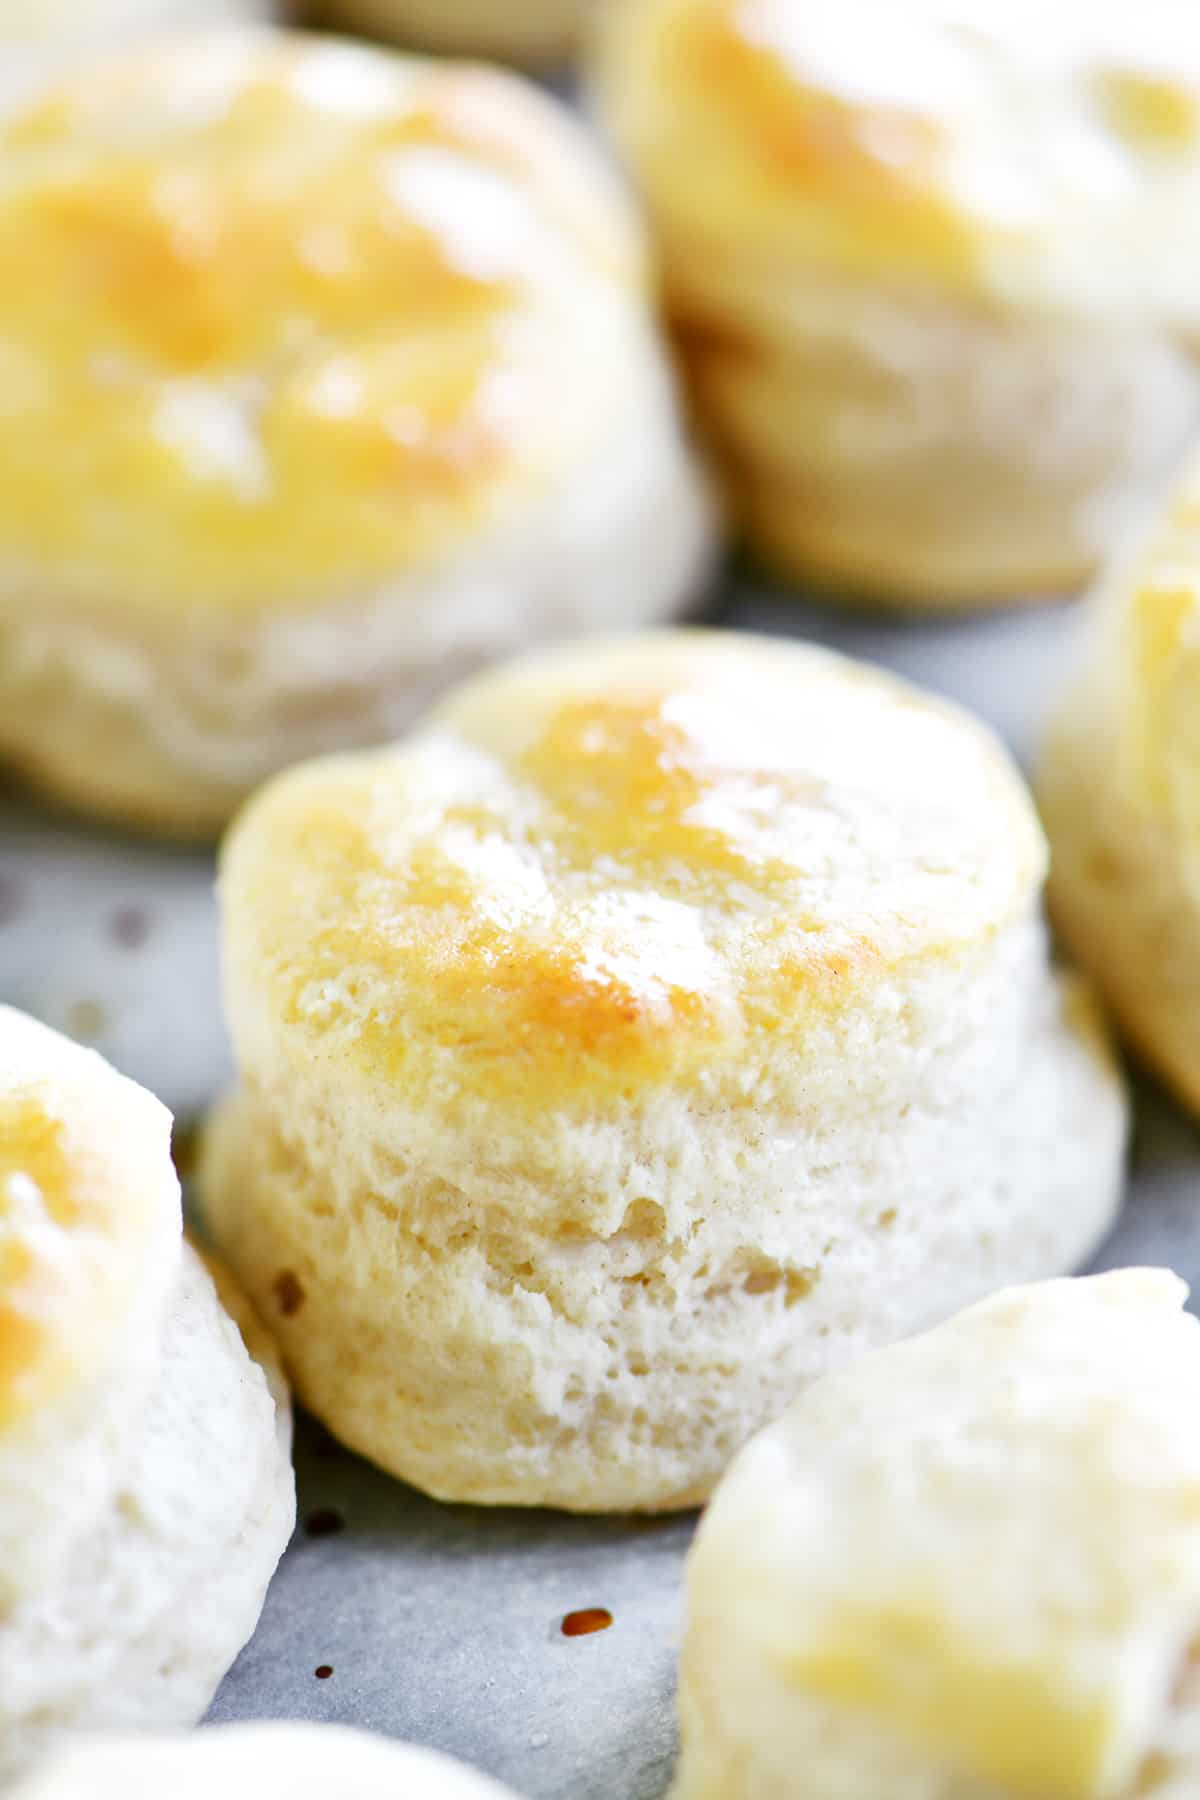 baked mini biscuit from side